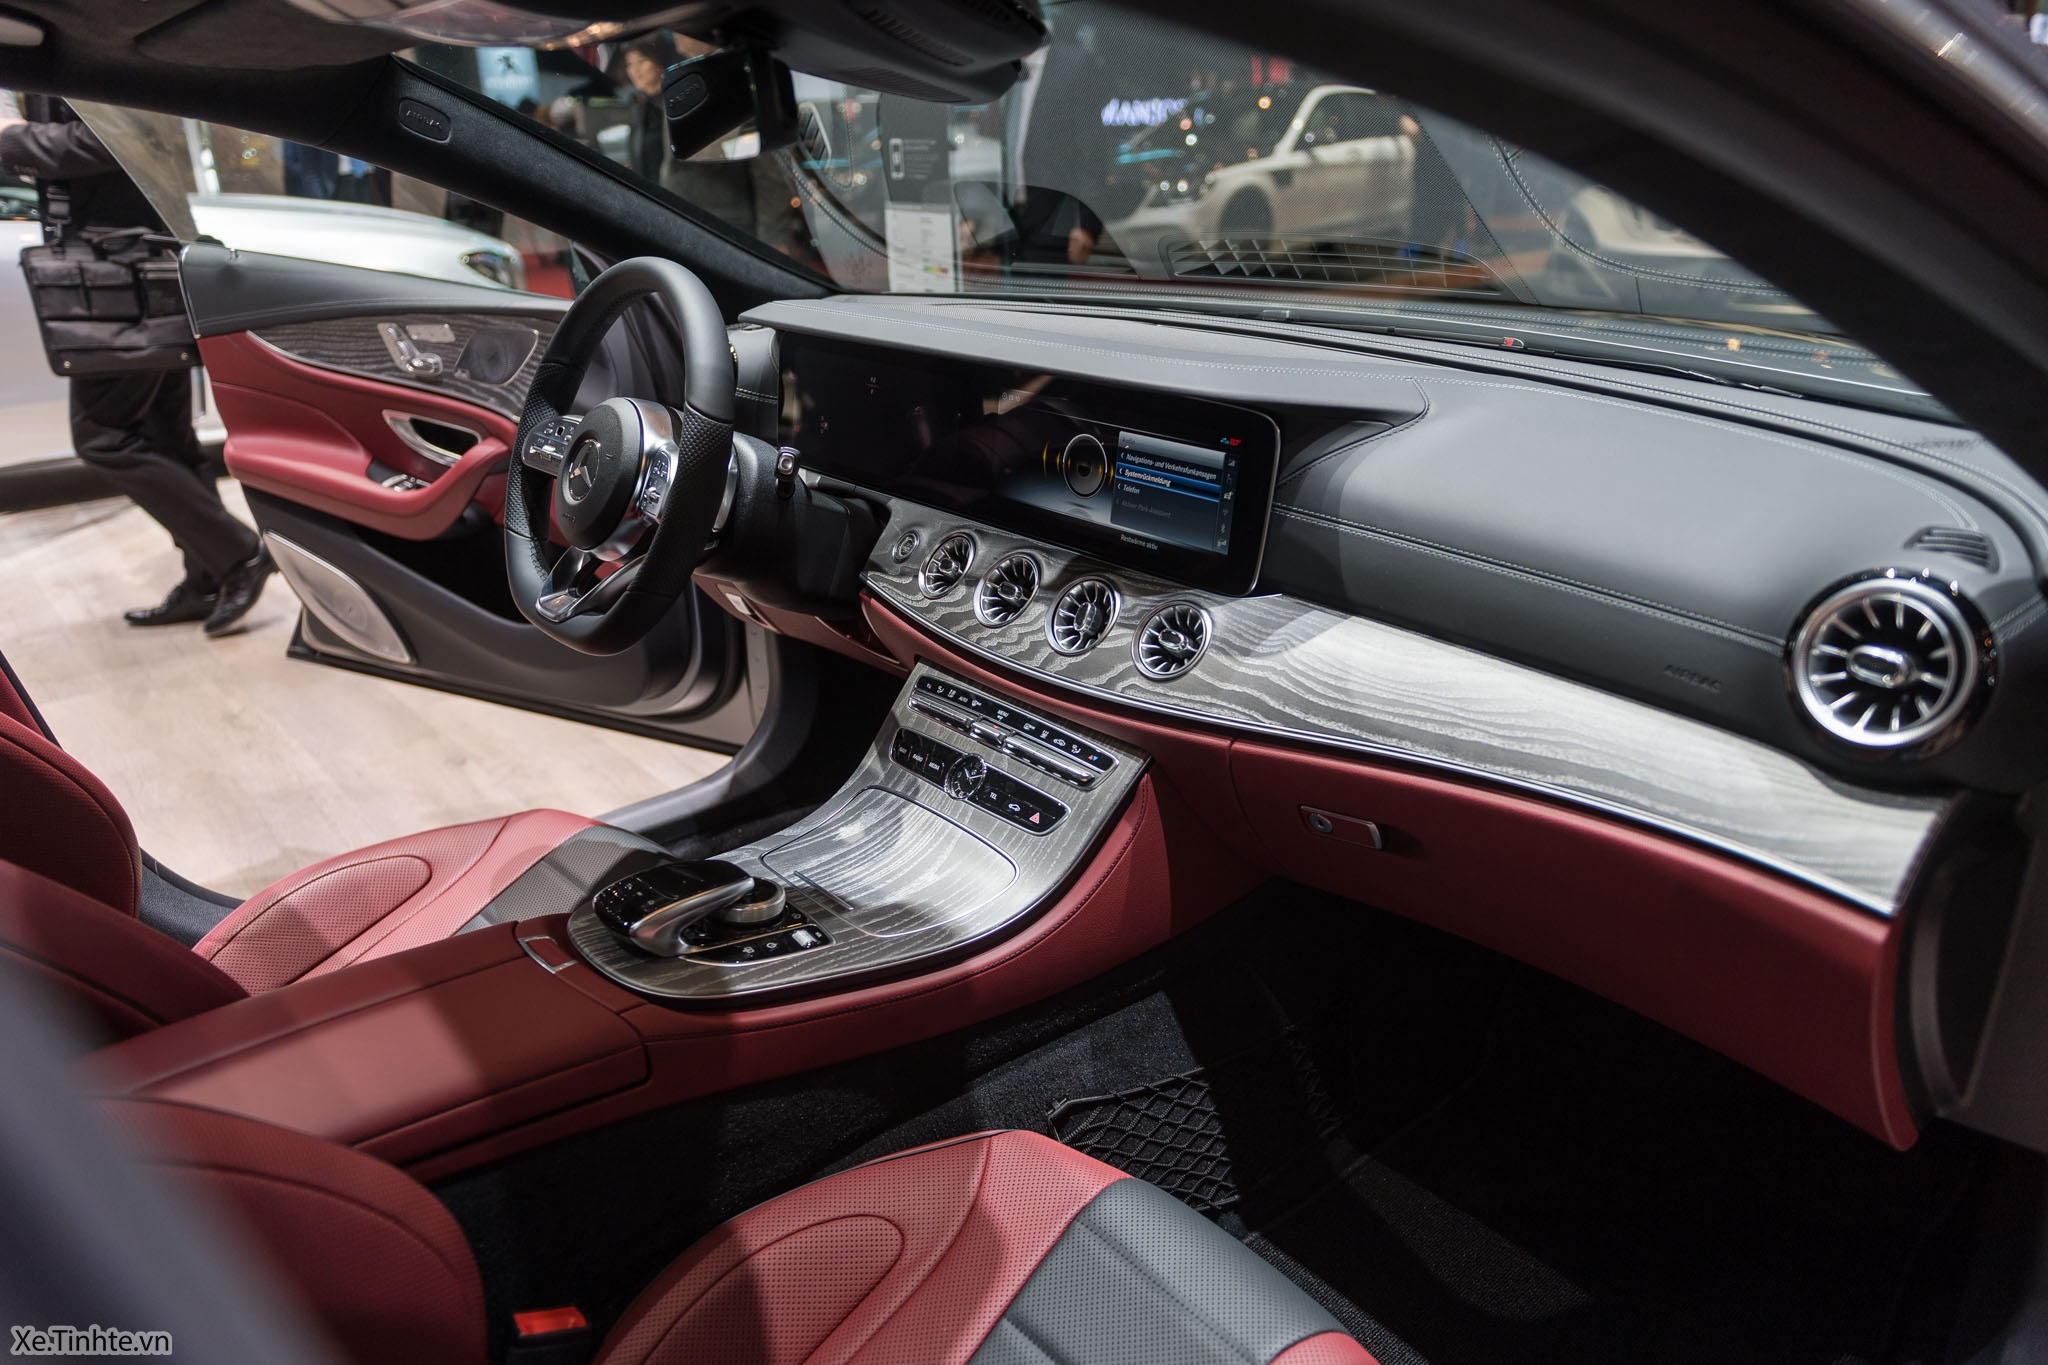 Mercedes_CLS_450_4MATIC_Coupe_Xe_Tinhte-015.jpg